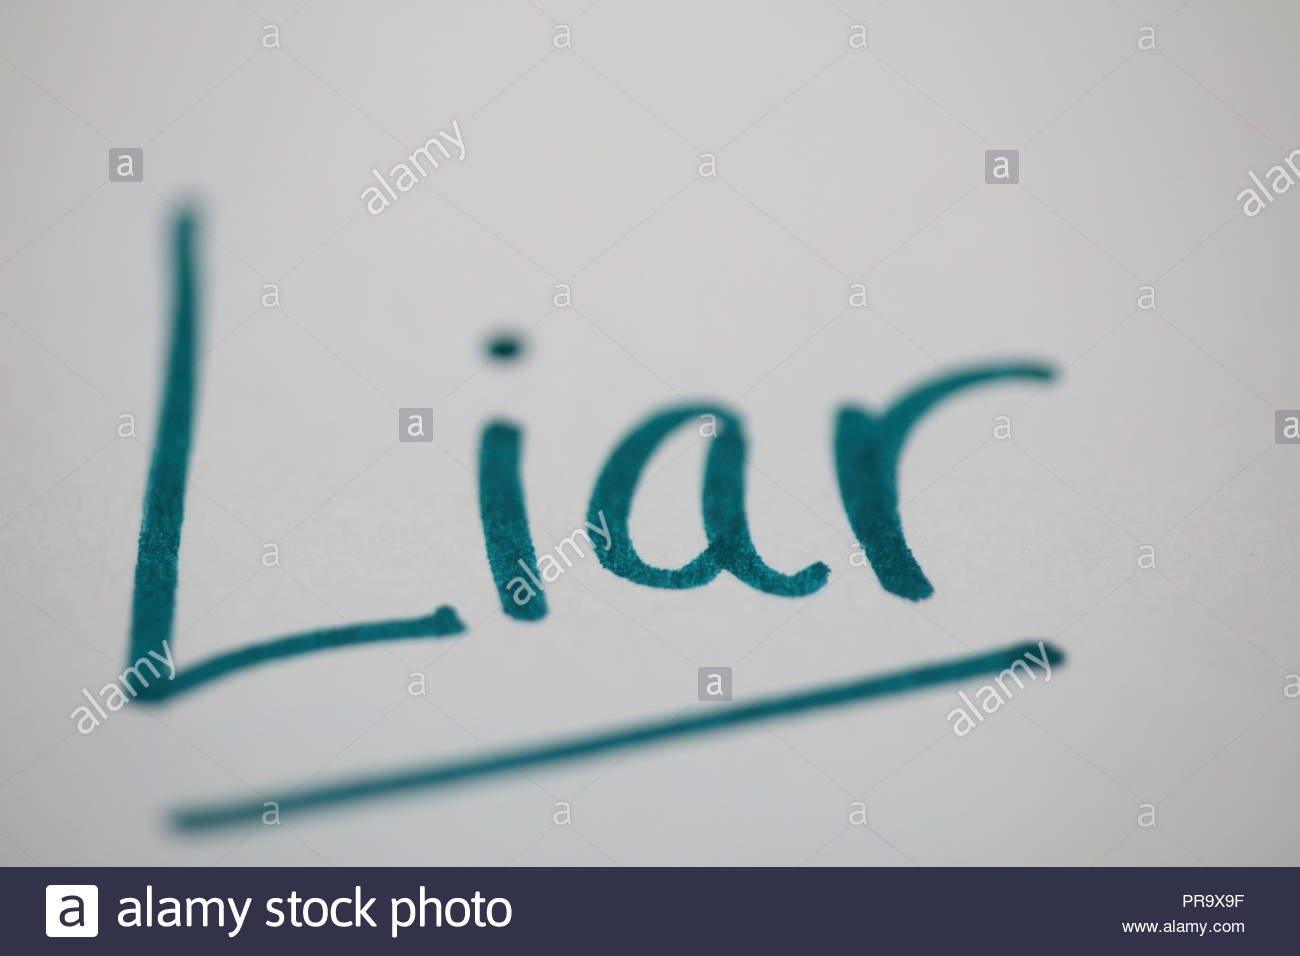 The word Liar written in green marker on white paper. Top and bottom purposefully out of focus for effect. - Stock Image